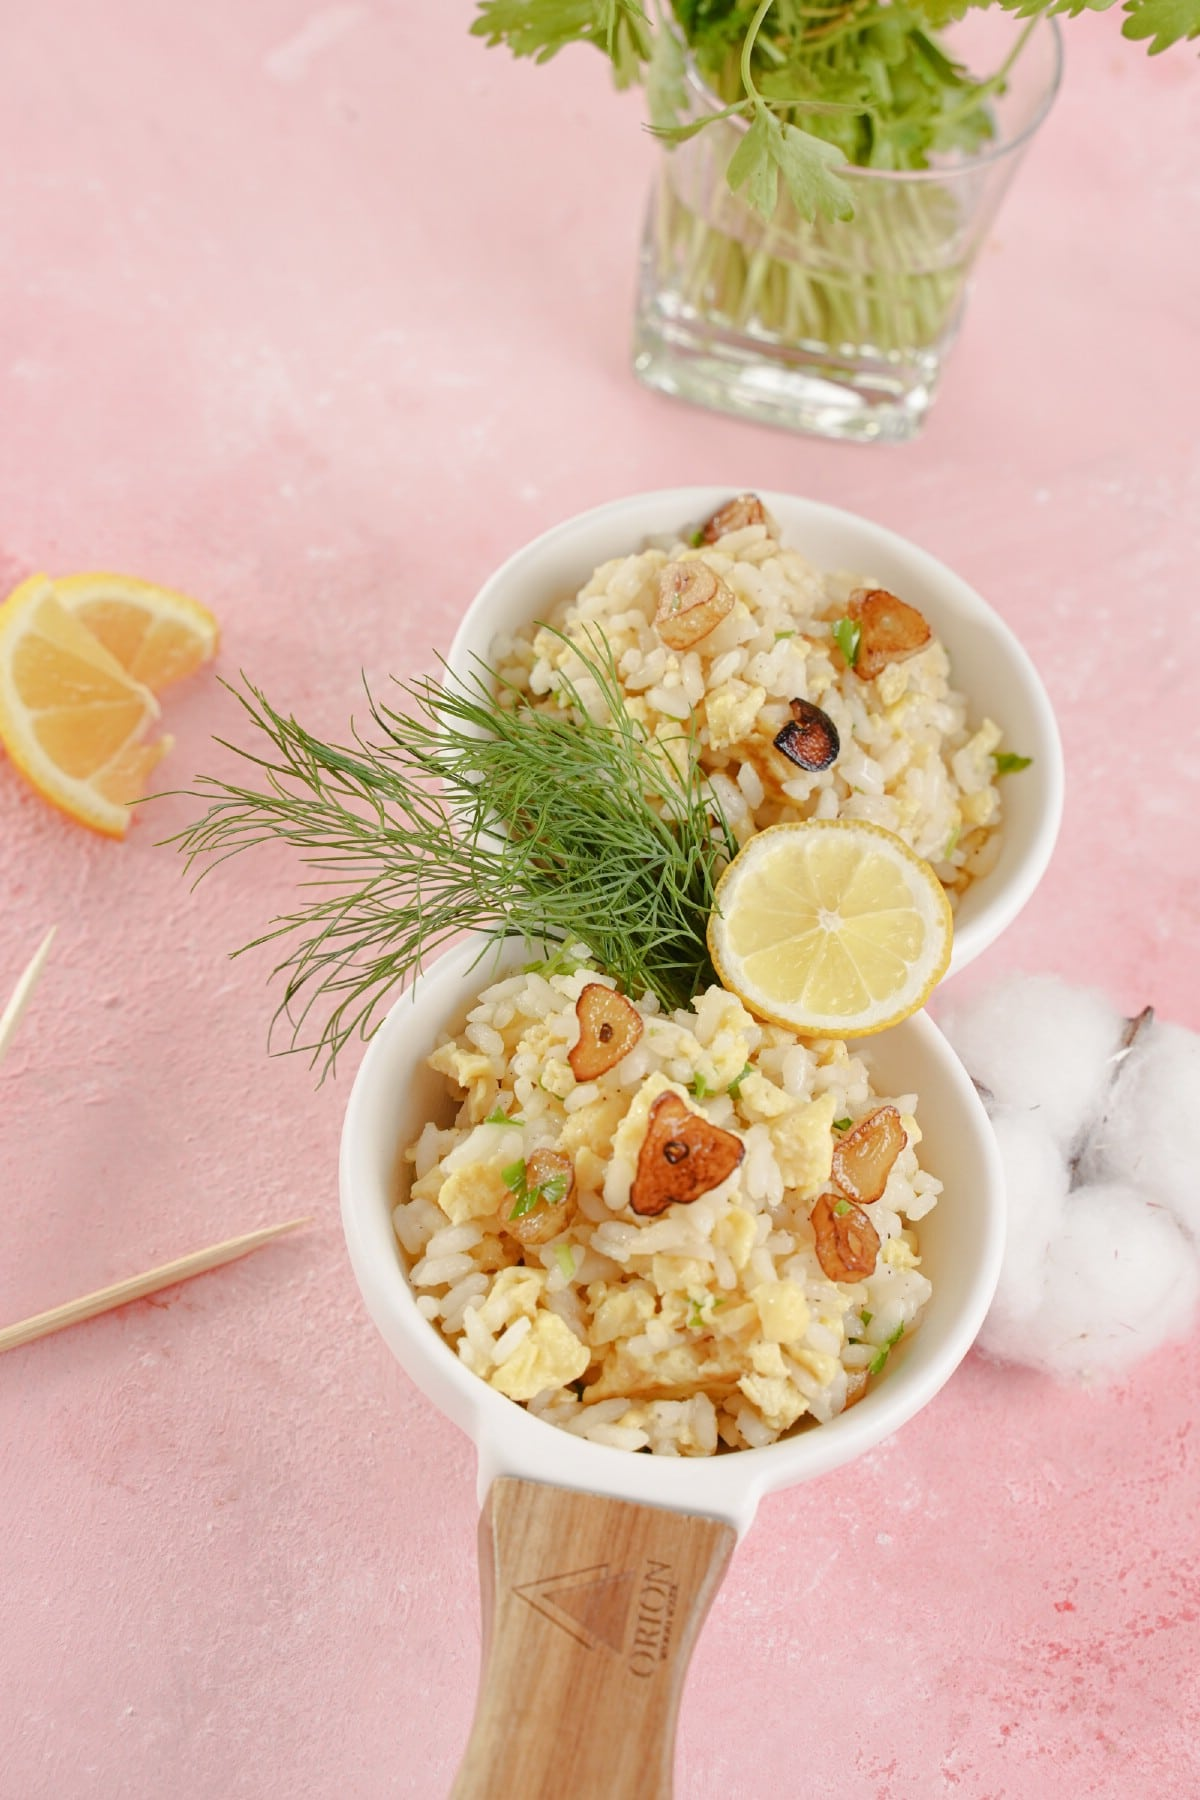 Rice in white bowls topped with herbs and lemon slice